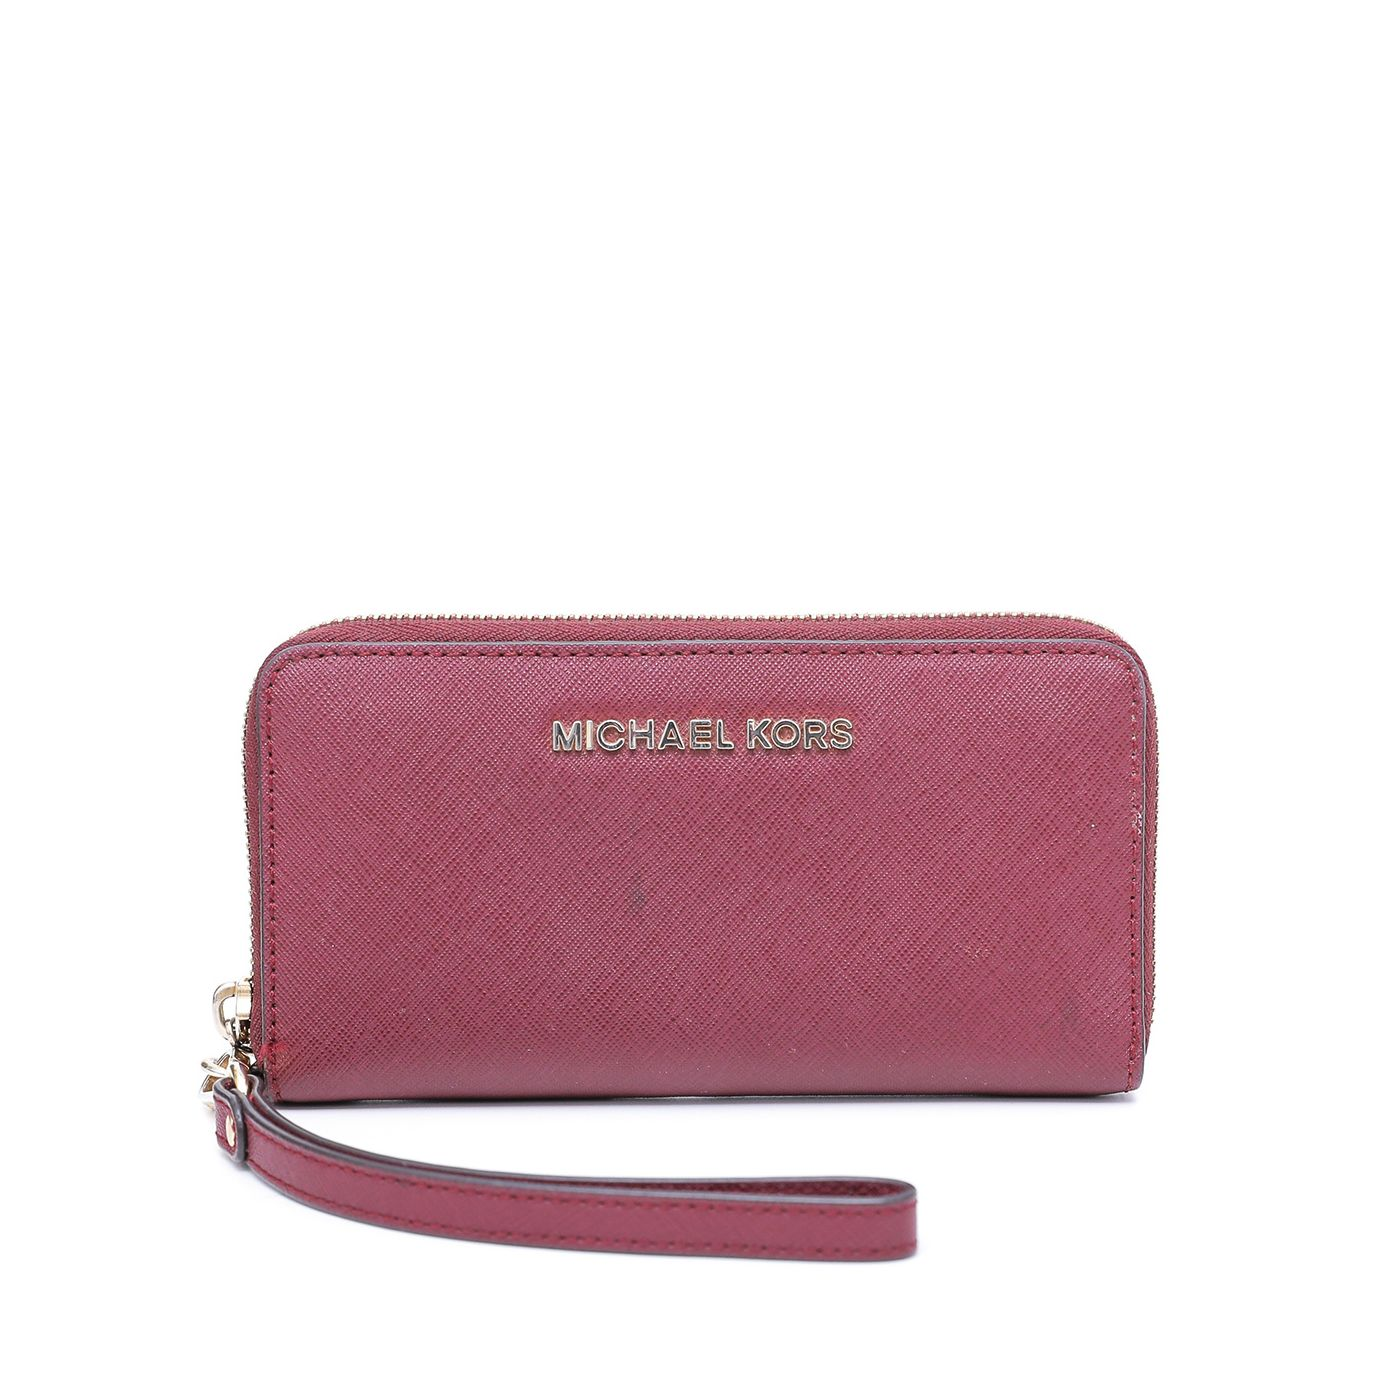 Michael Kors Brandy Zip Around Wallet